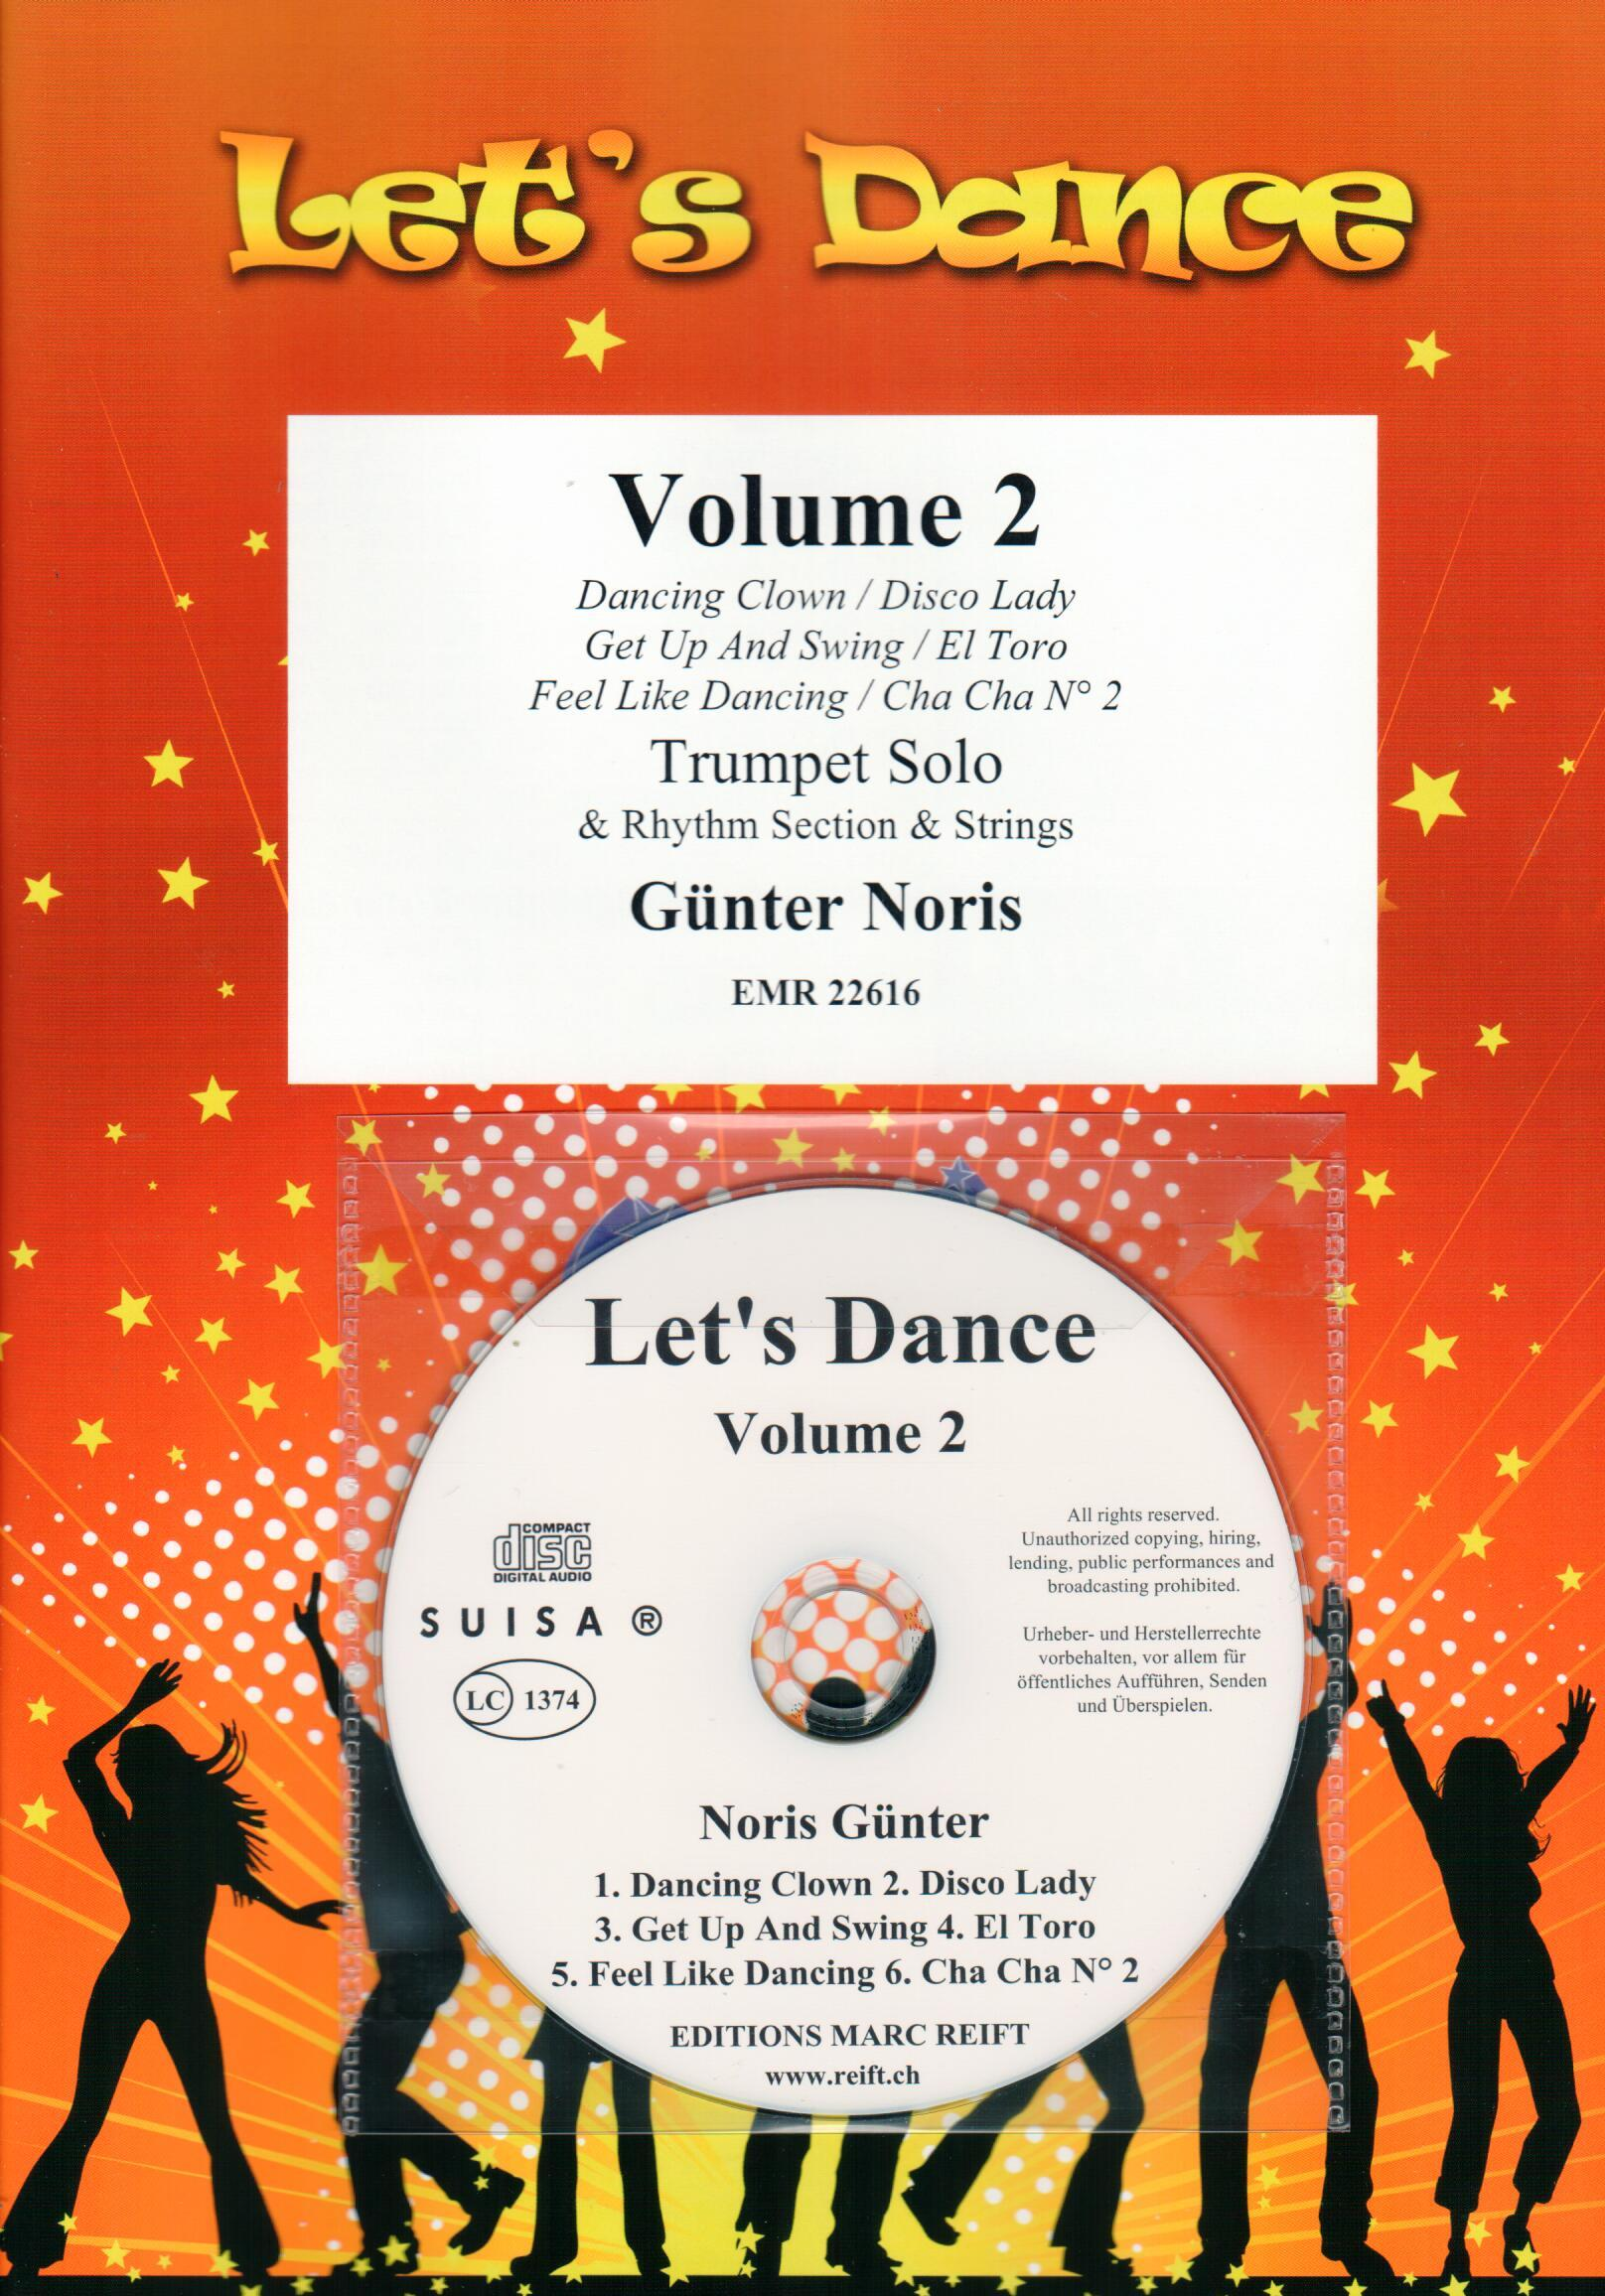 LET'S DANCE VOLUME 2 - Just Music - Brass Band Music and CDs